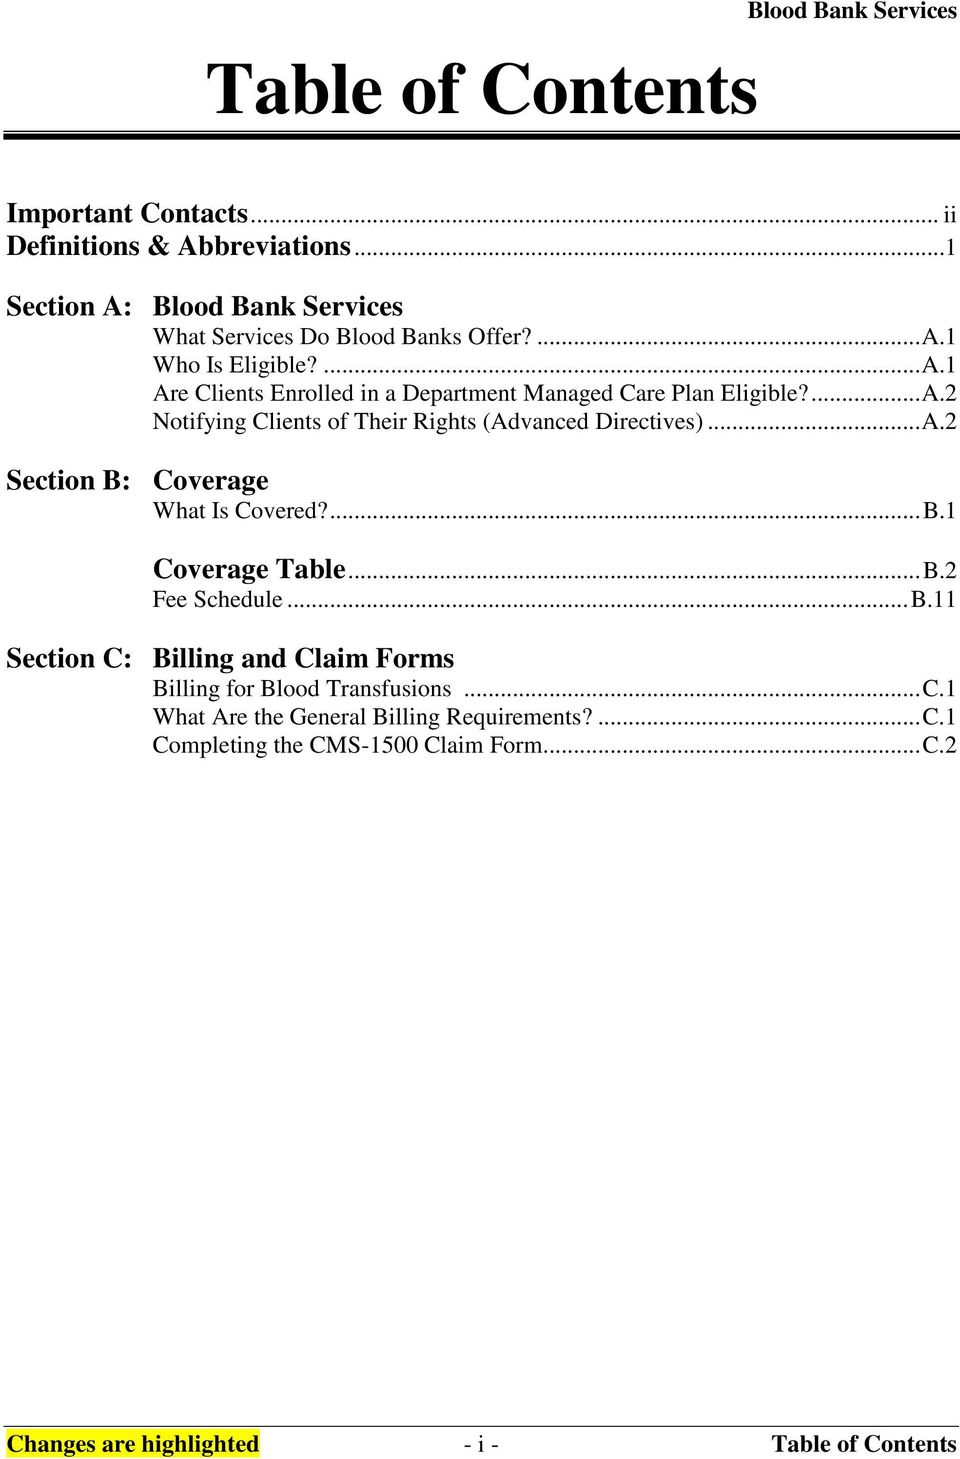 MEDICAID PURCHASING ADMINISTRATION (MPA) Blood Bank Services